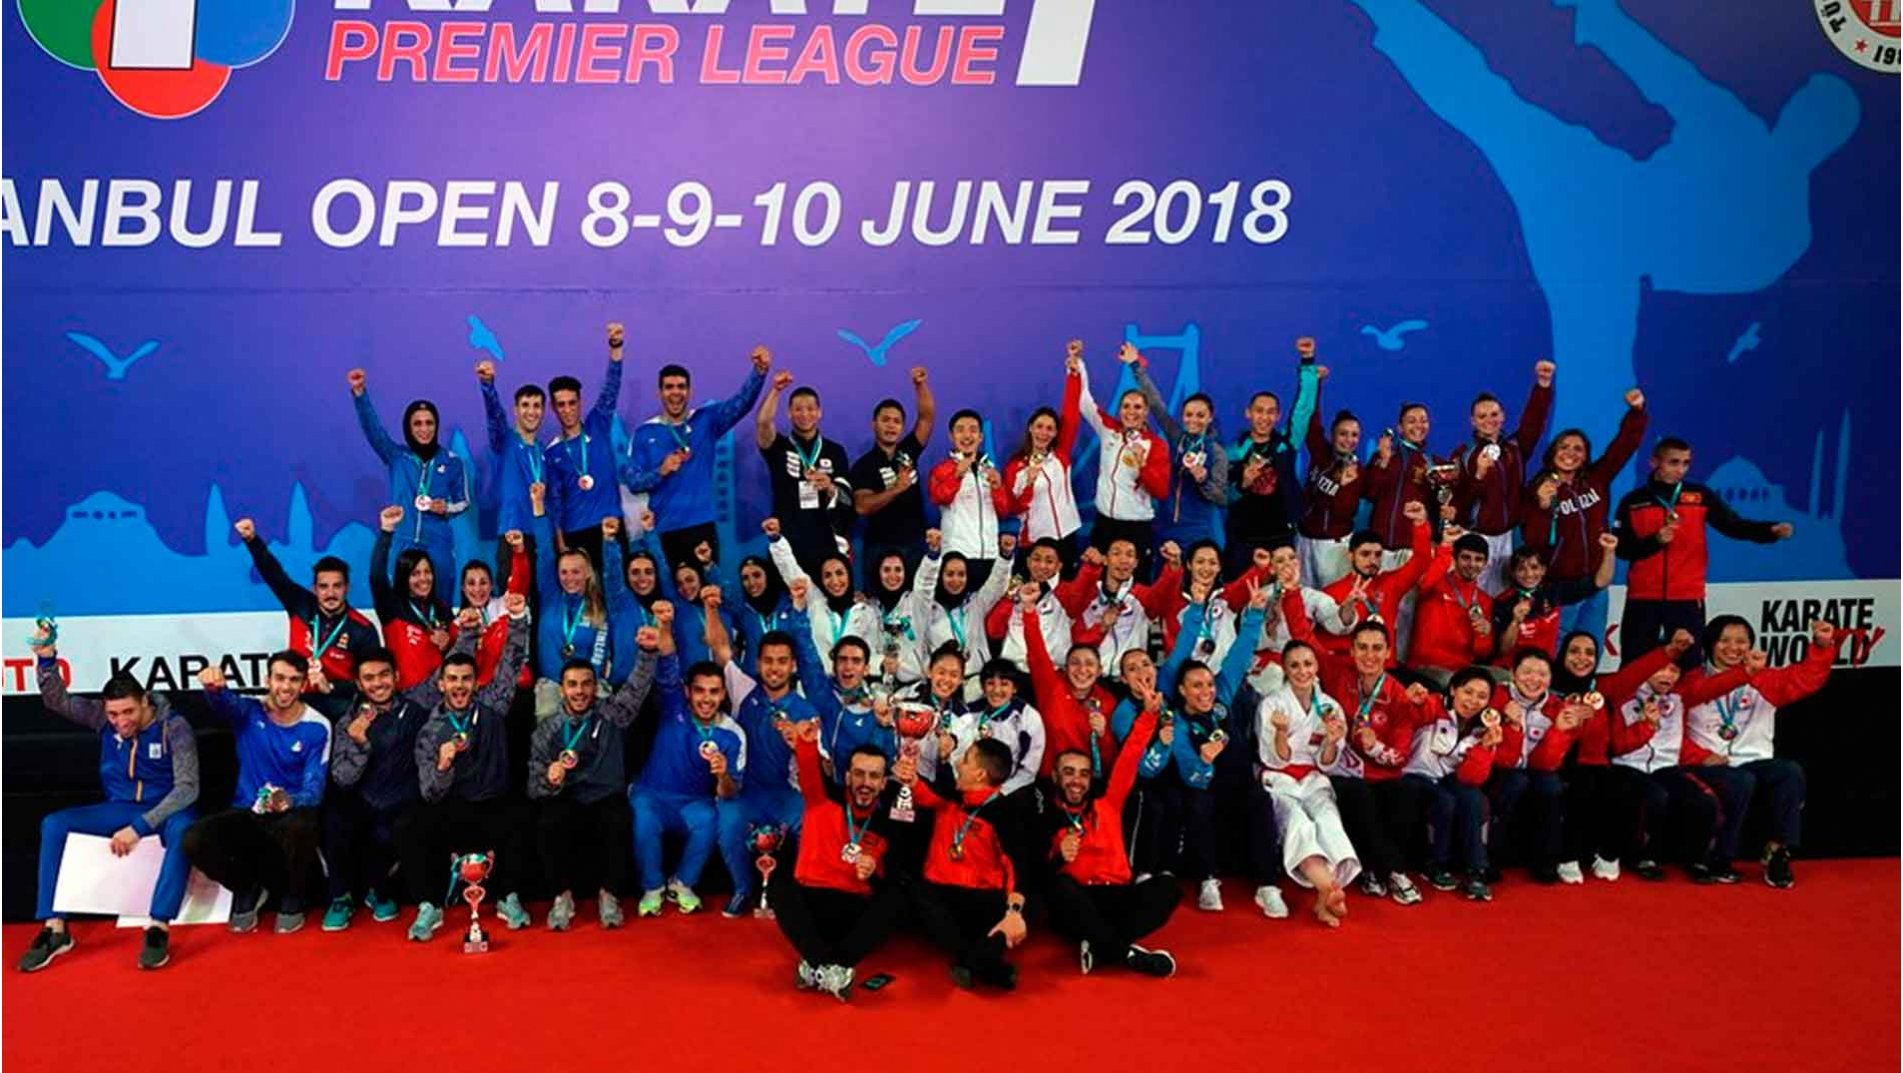 Karate Stars claim stunning wins as Karate 1-Premier League concludes in Istanbul